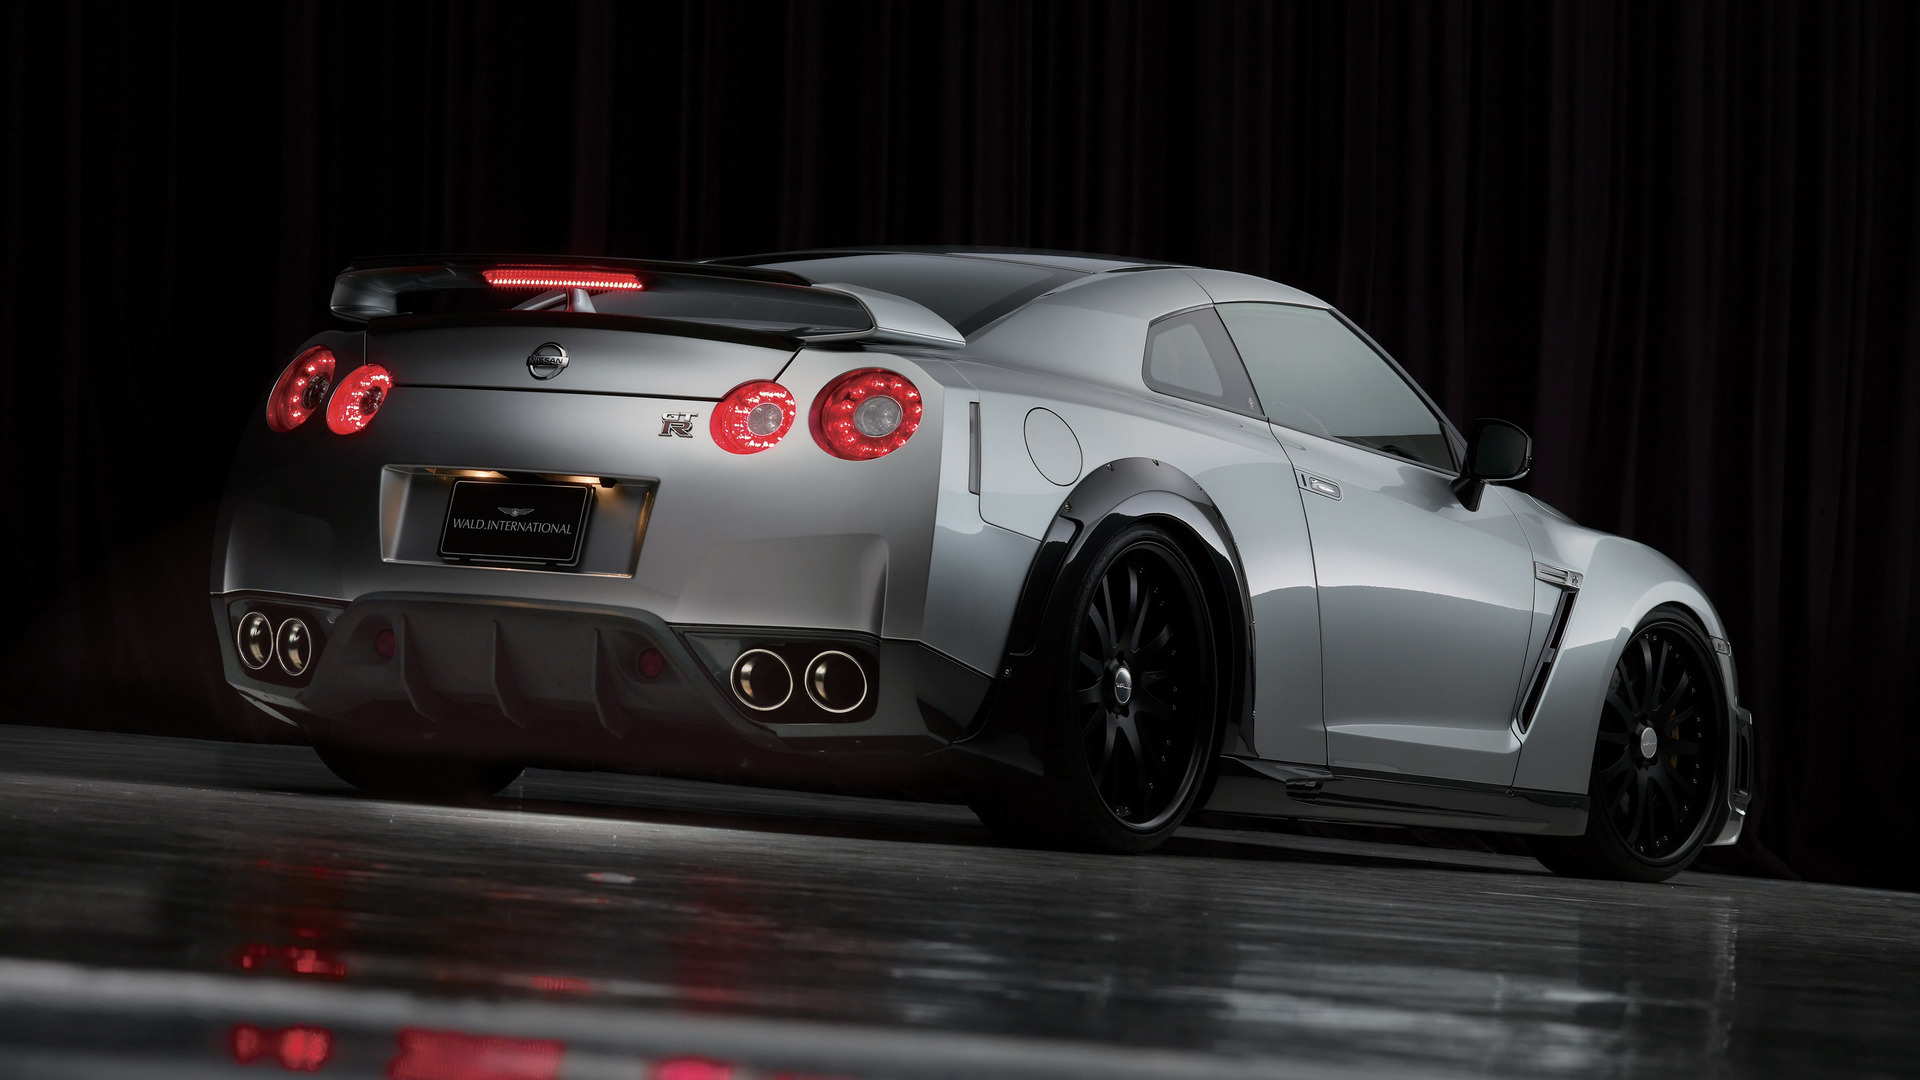 Awesome Nissan Car 1920X1080 Pixels Full HD Wallpaper Pack - Tech Bug ...